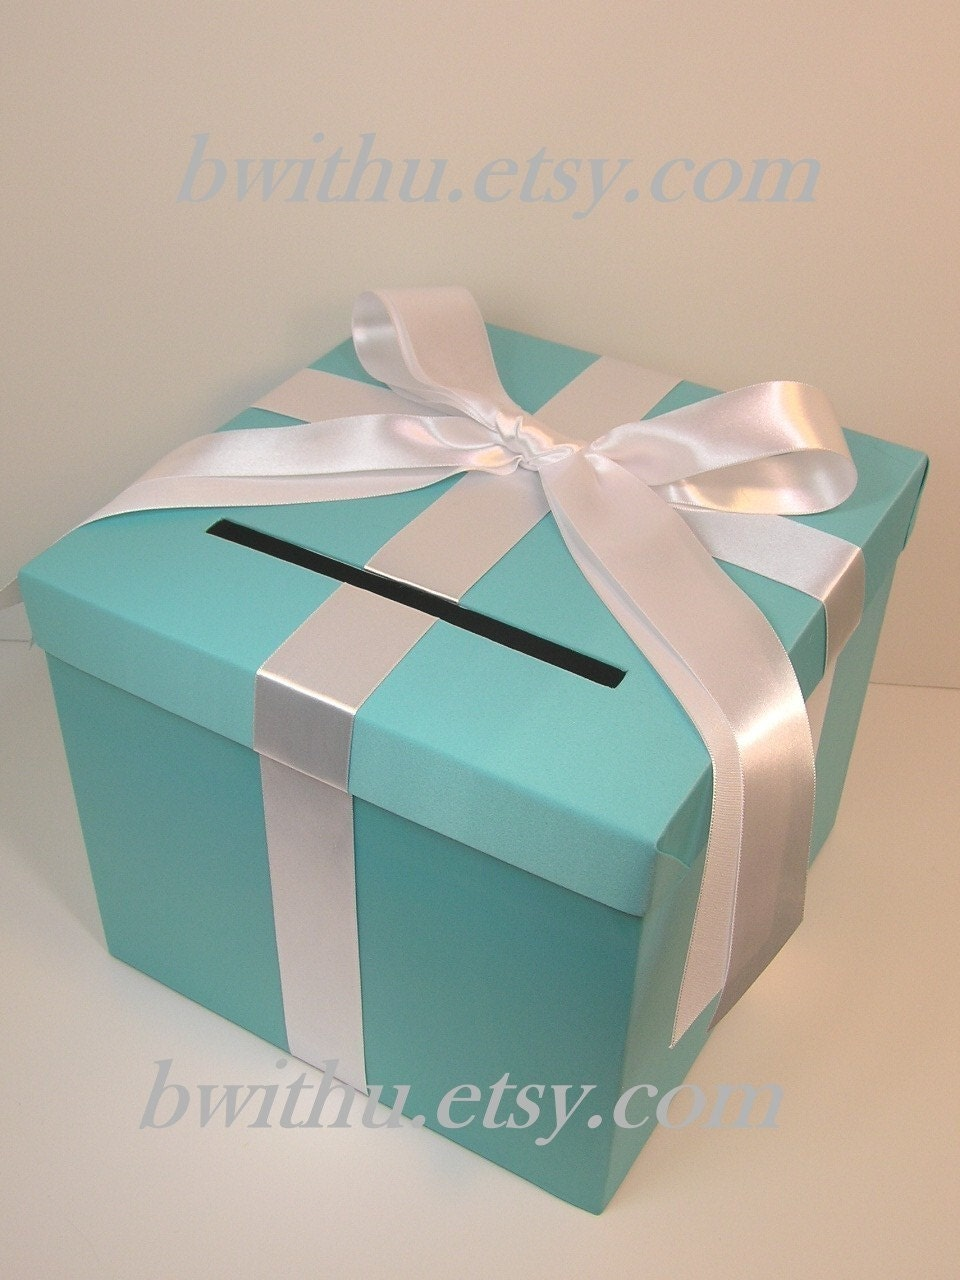 Wedding Gift Card Containers : Blue Wedding Card Box Gift Card Box Money Box by bwithustudio